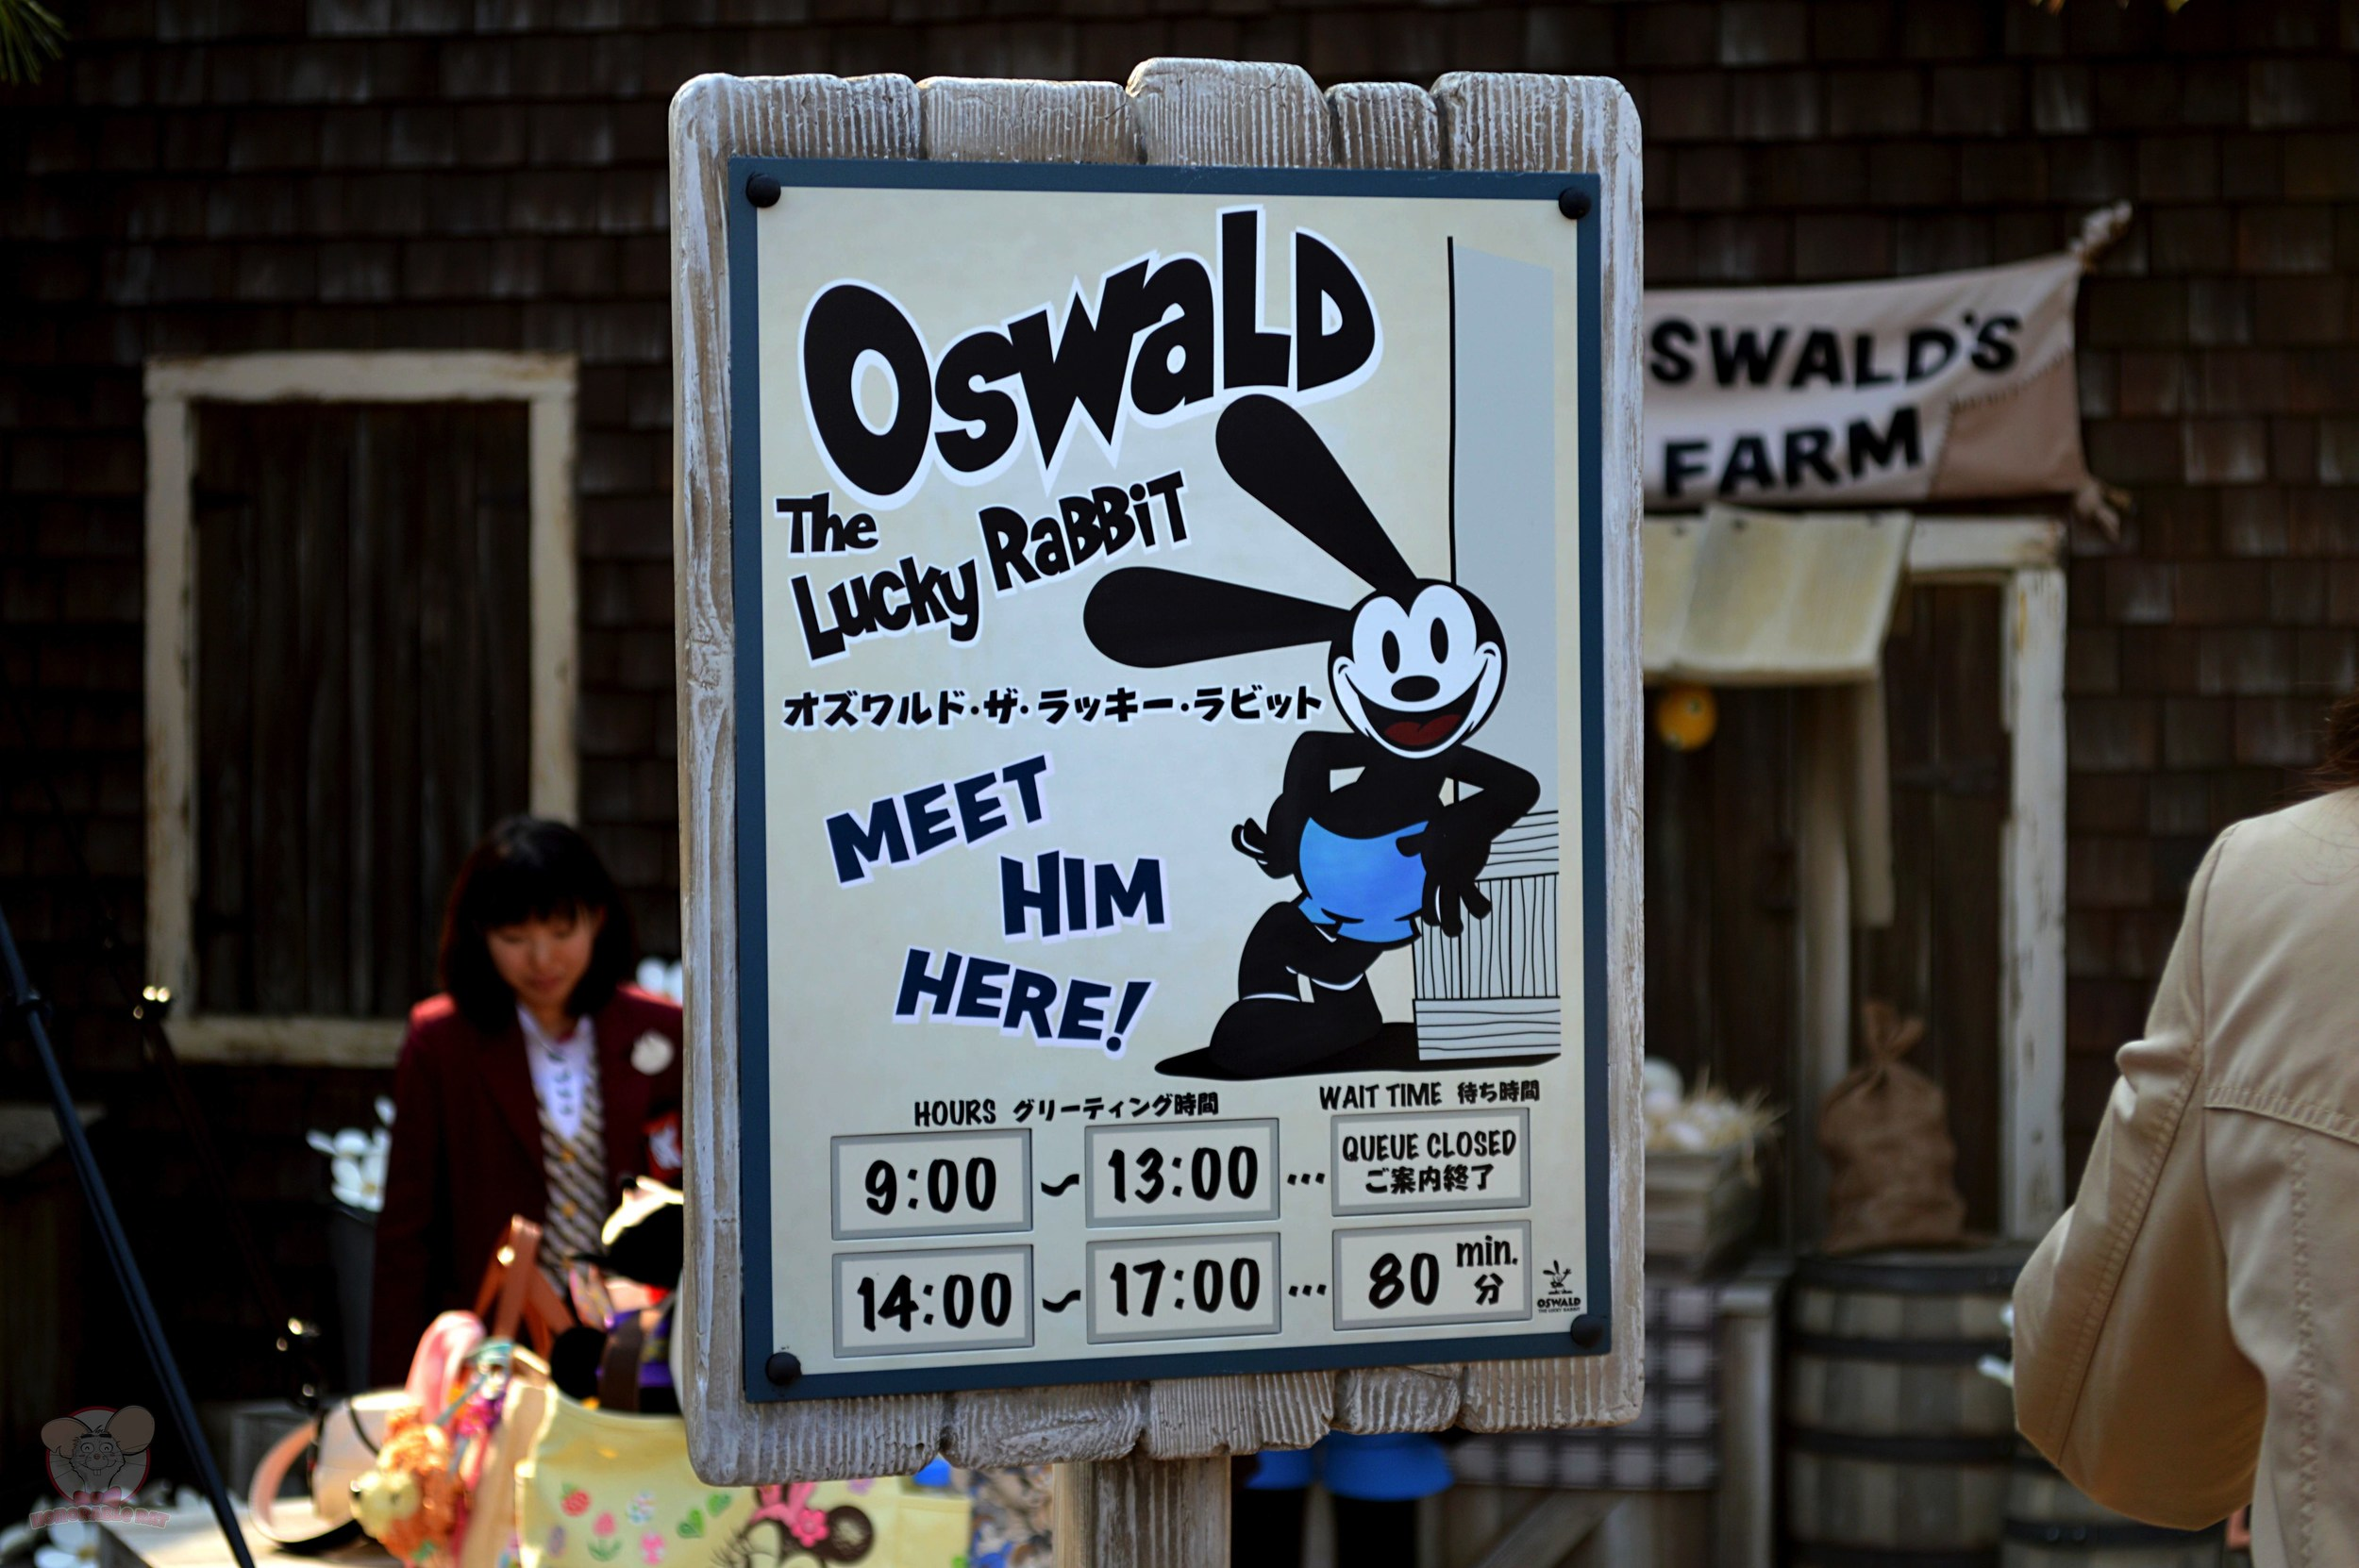 Oswald`s working hours and wait time.